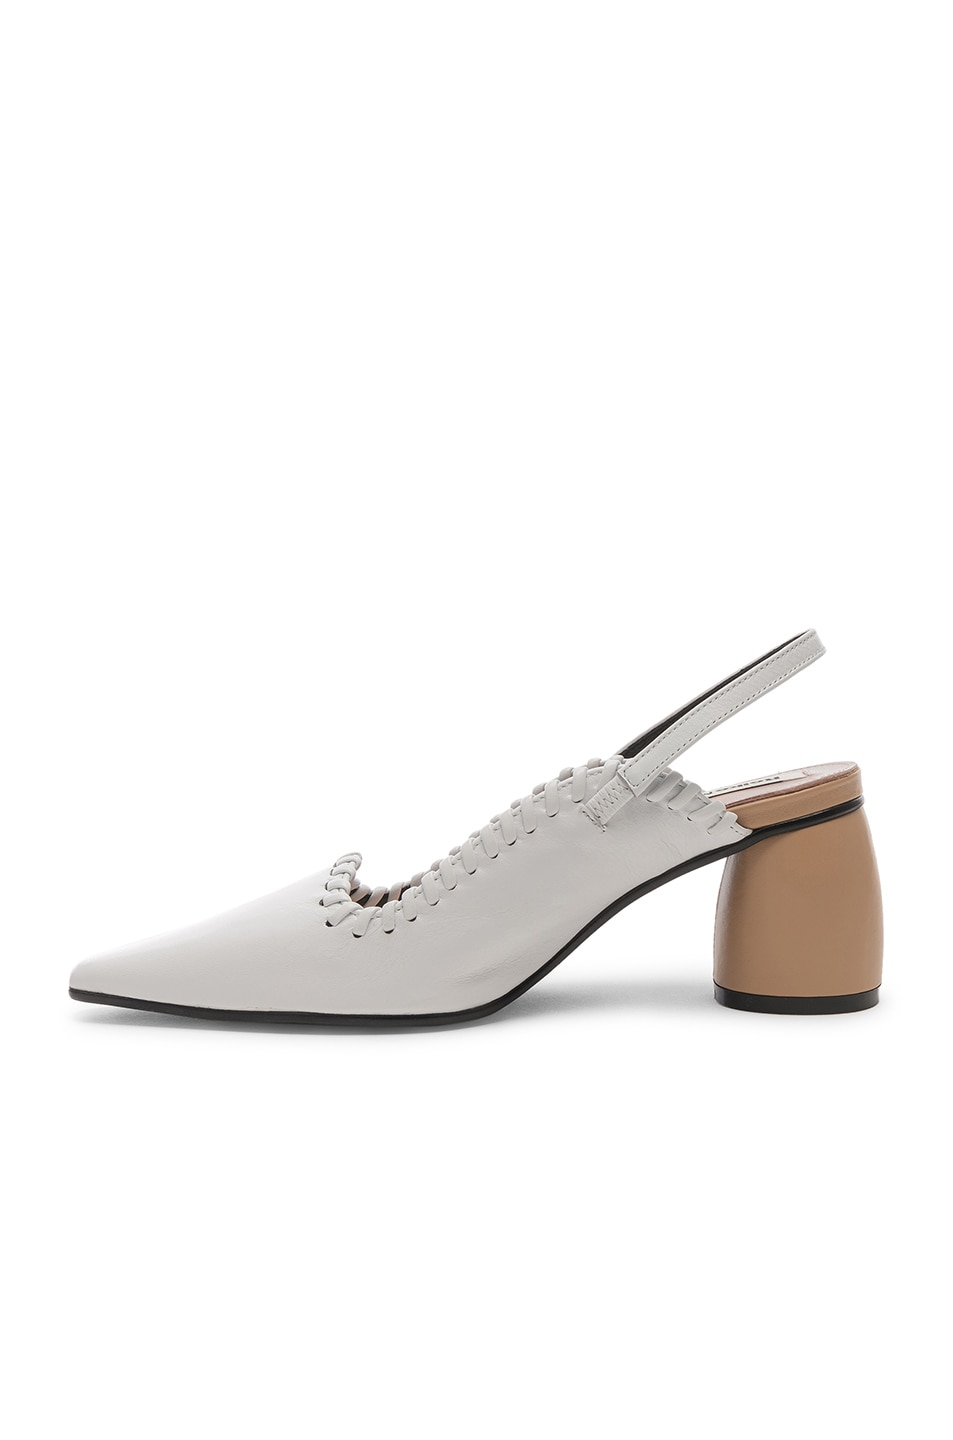 Image 5 of Reike Nen Curved Middle Slingback in White & Beige